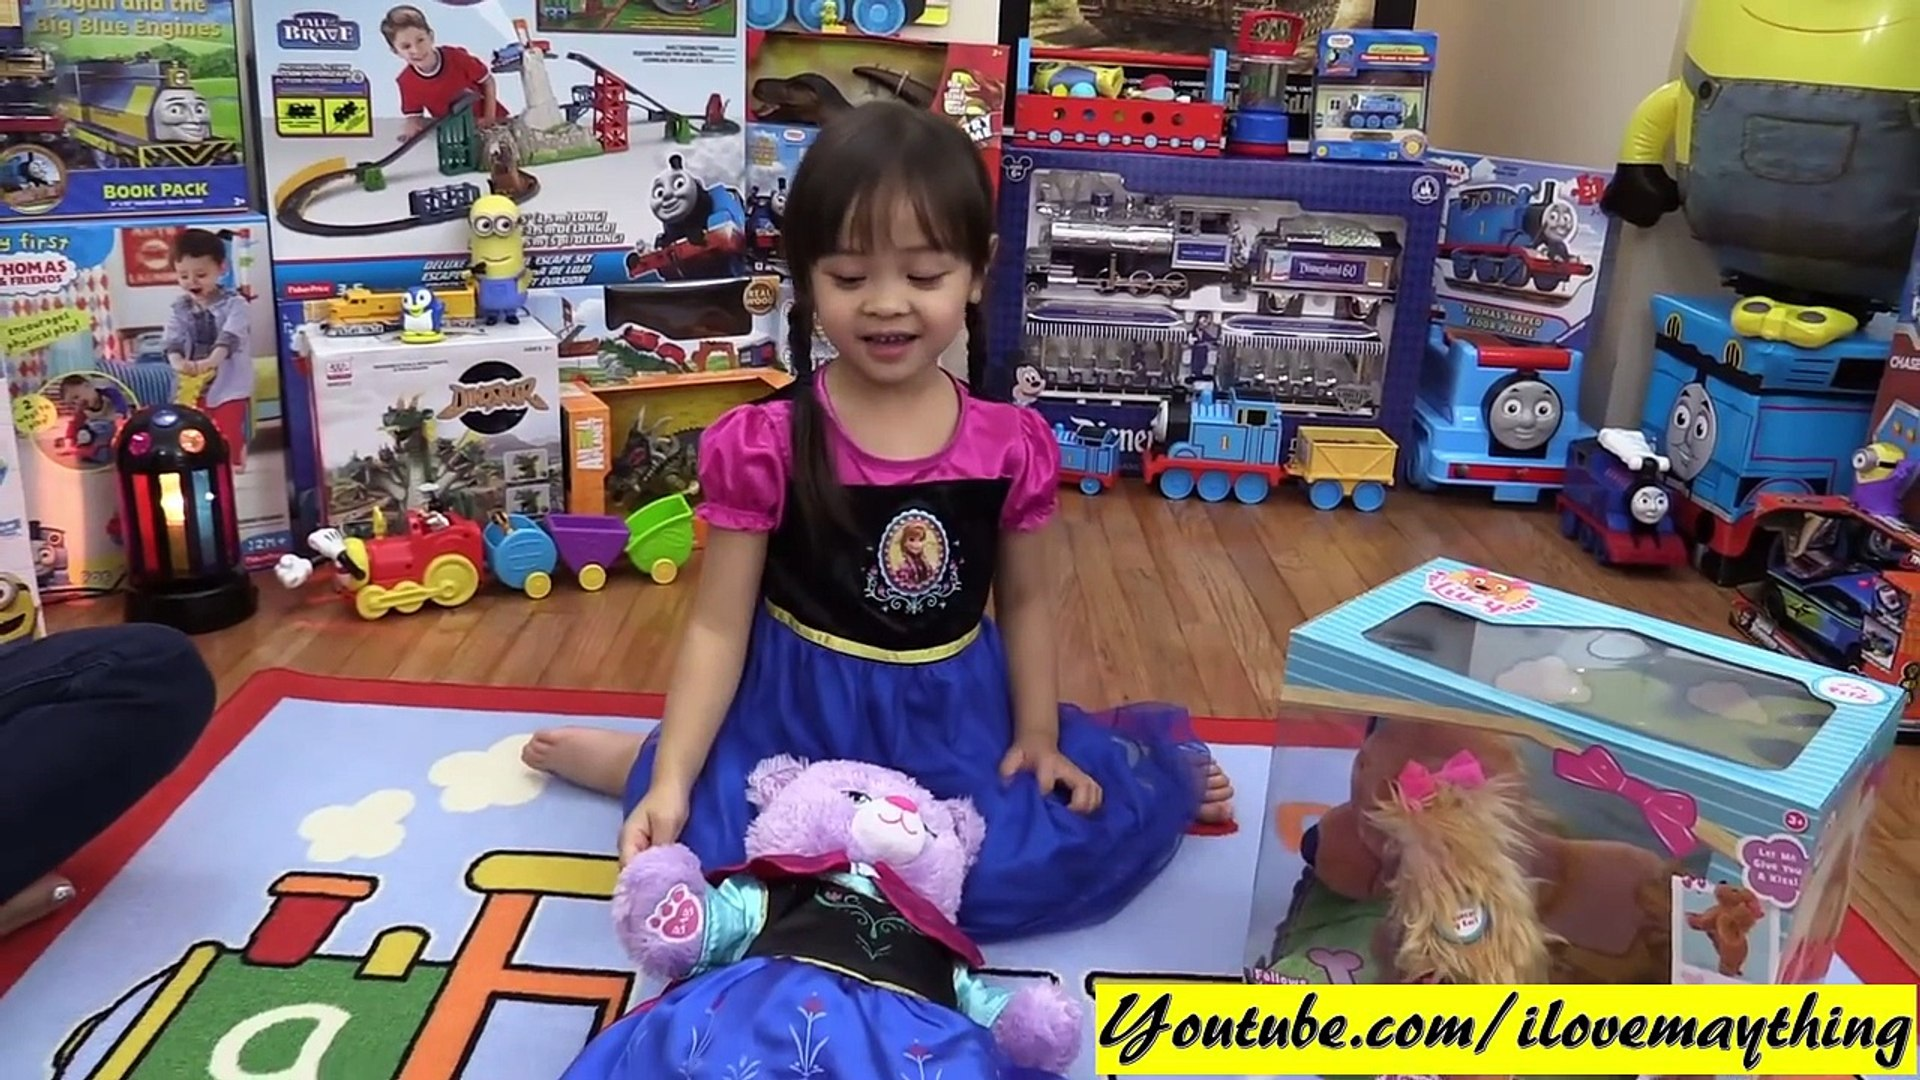 Animal Toy Pet for Little Girls: Club Petz Interive Dog LUCY Unboxing and Playtime Fun